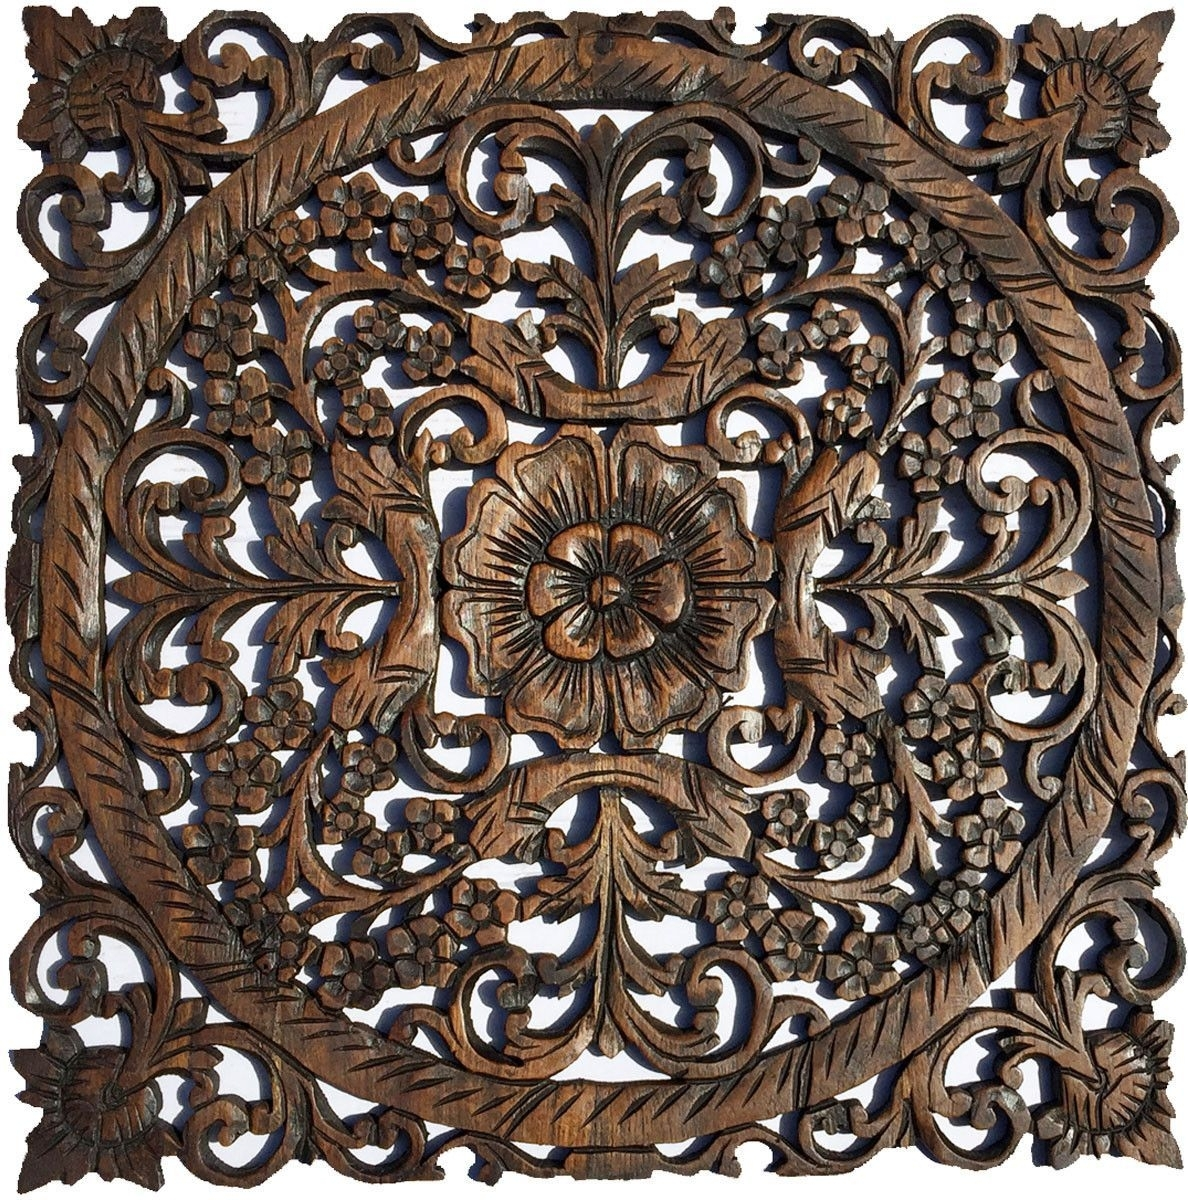 Oriental Carved Floral Wall Decor. Unique Asian Wood Wall Art (View 13 of 15)